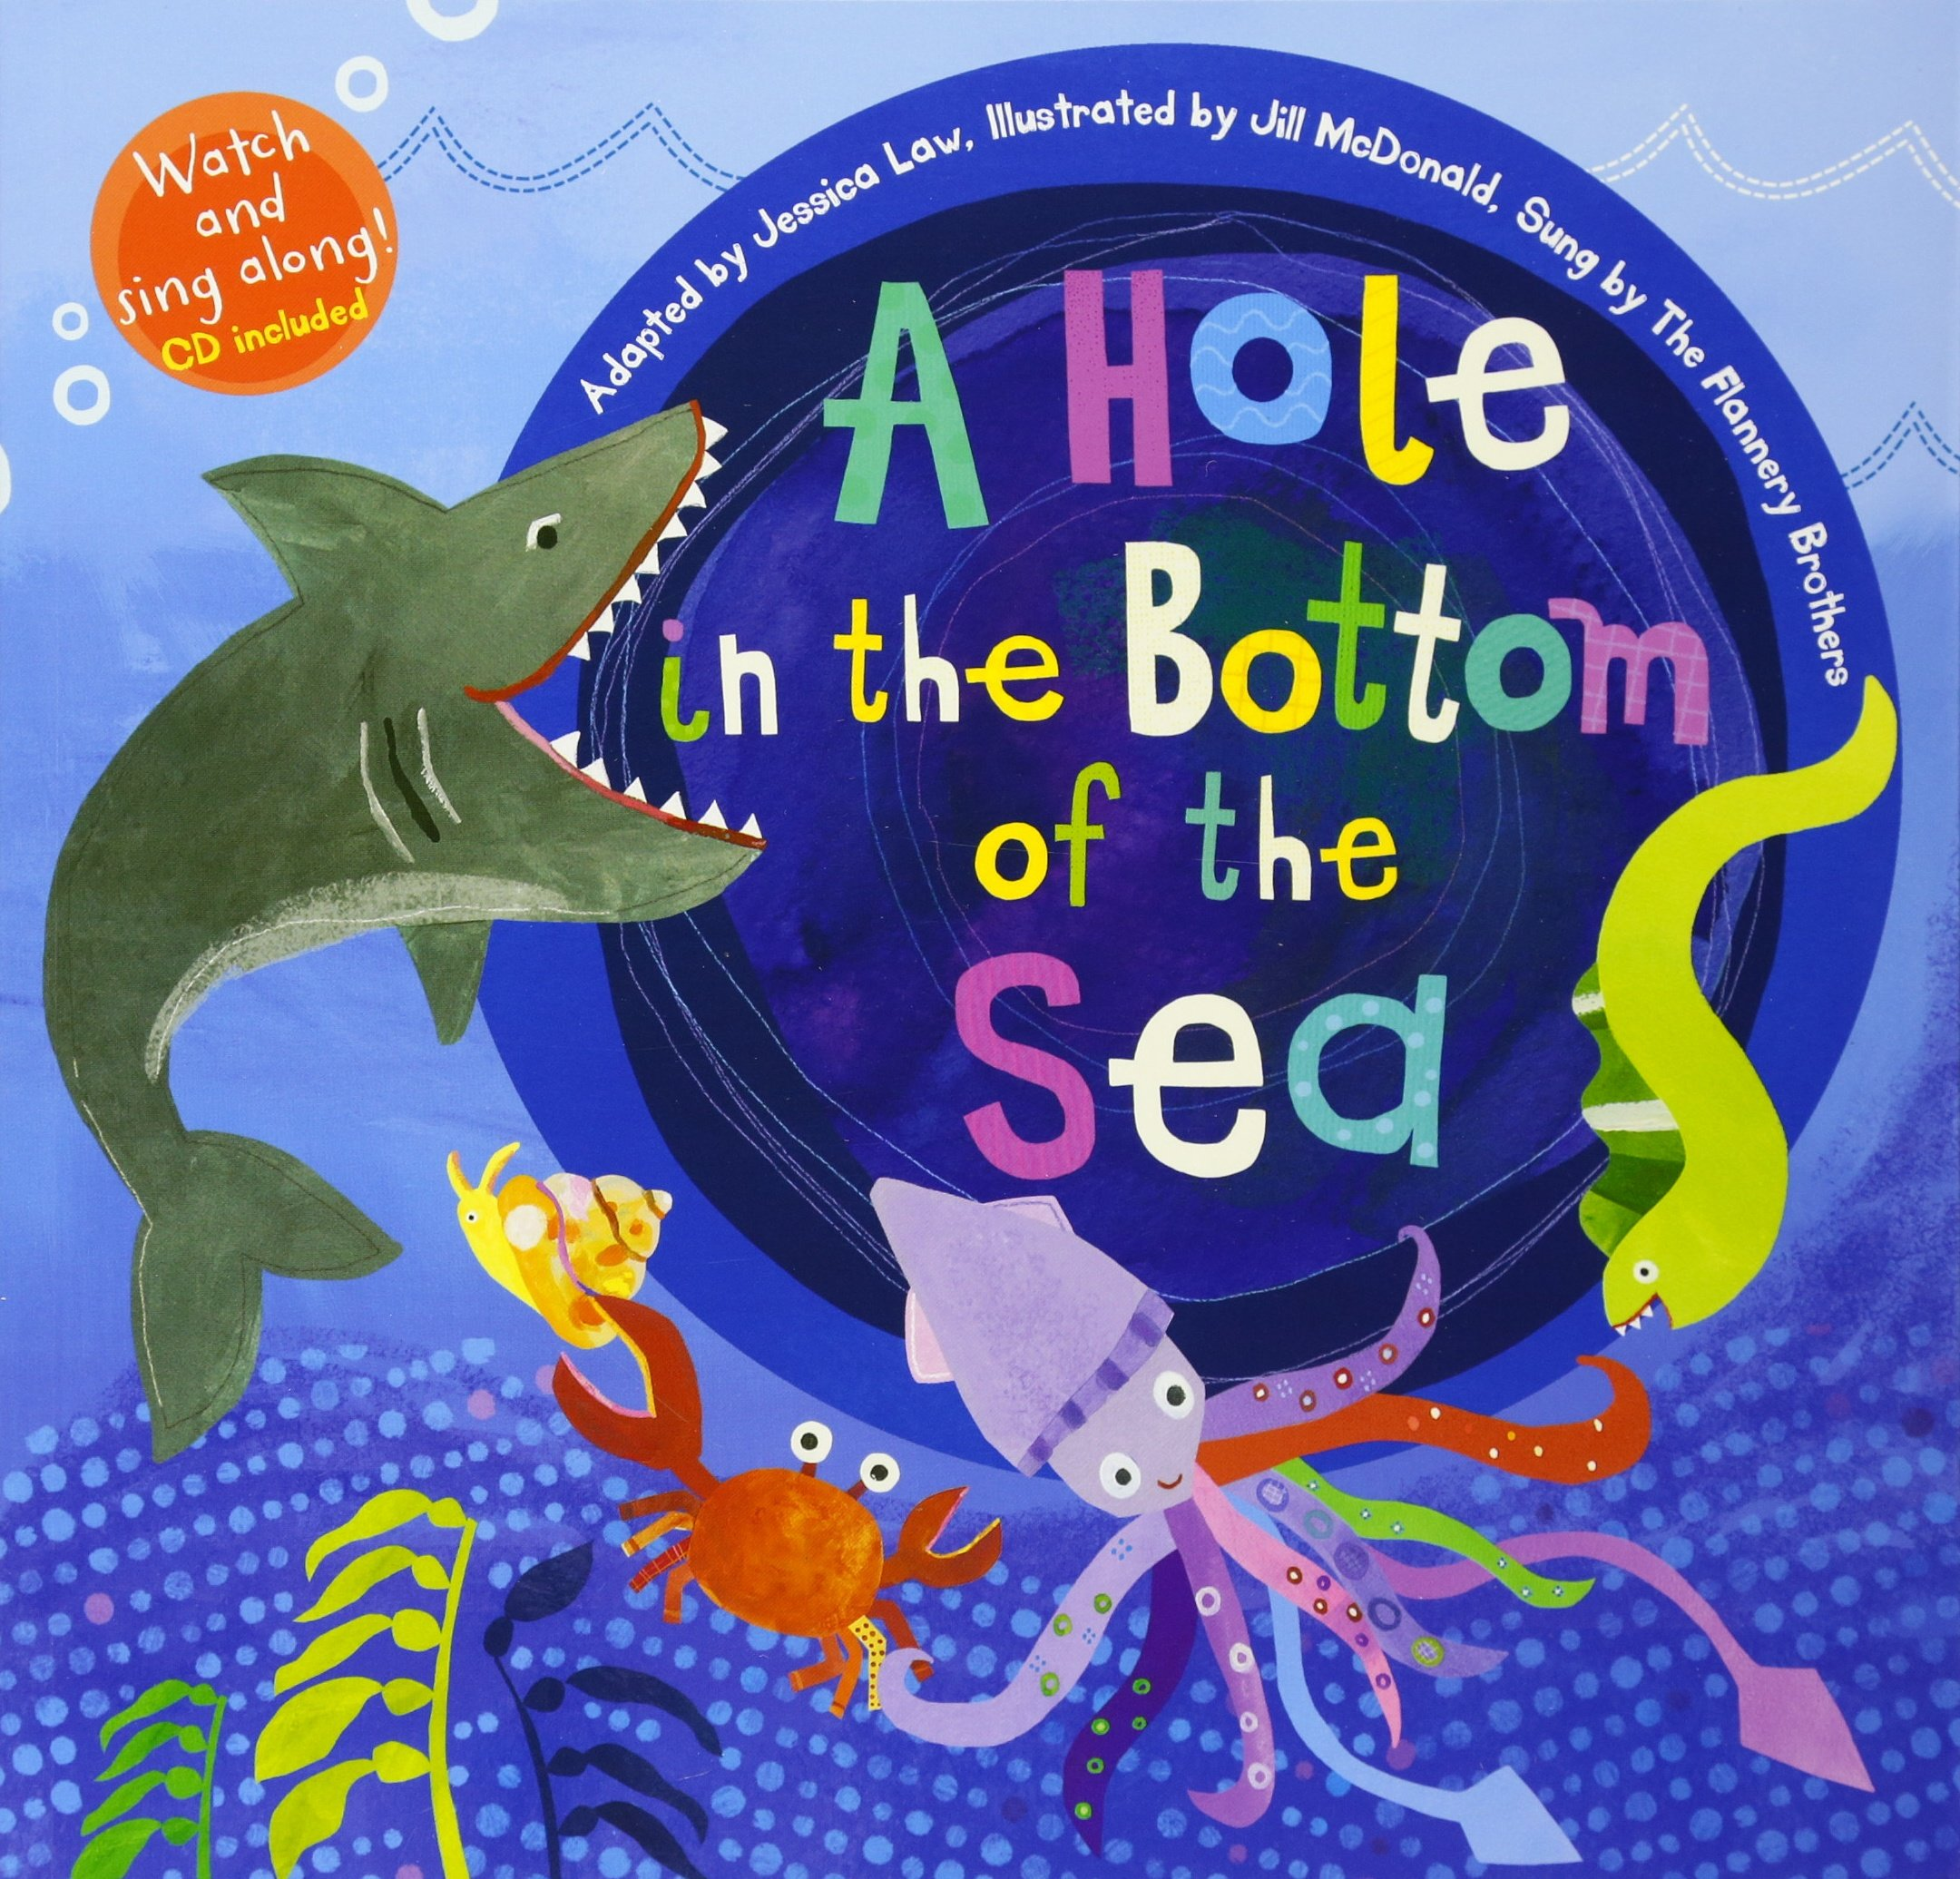 sea bottom in of Hole the